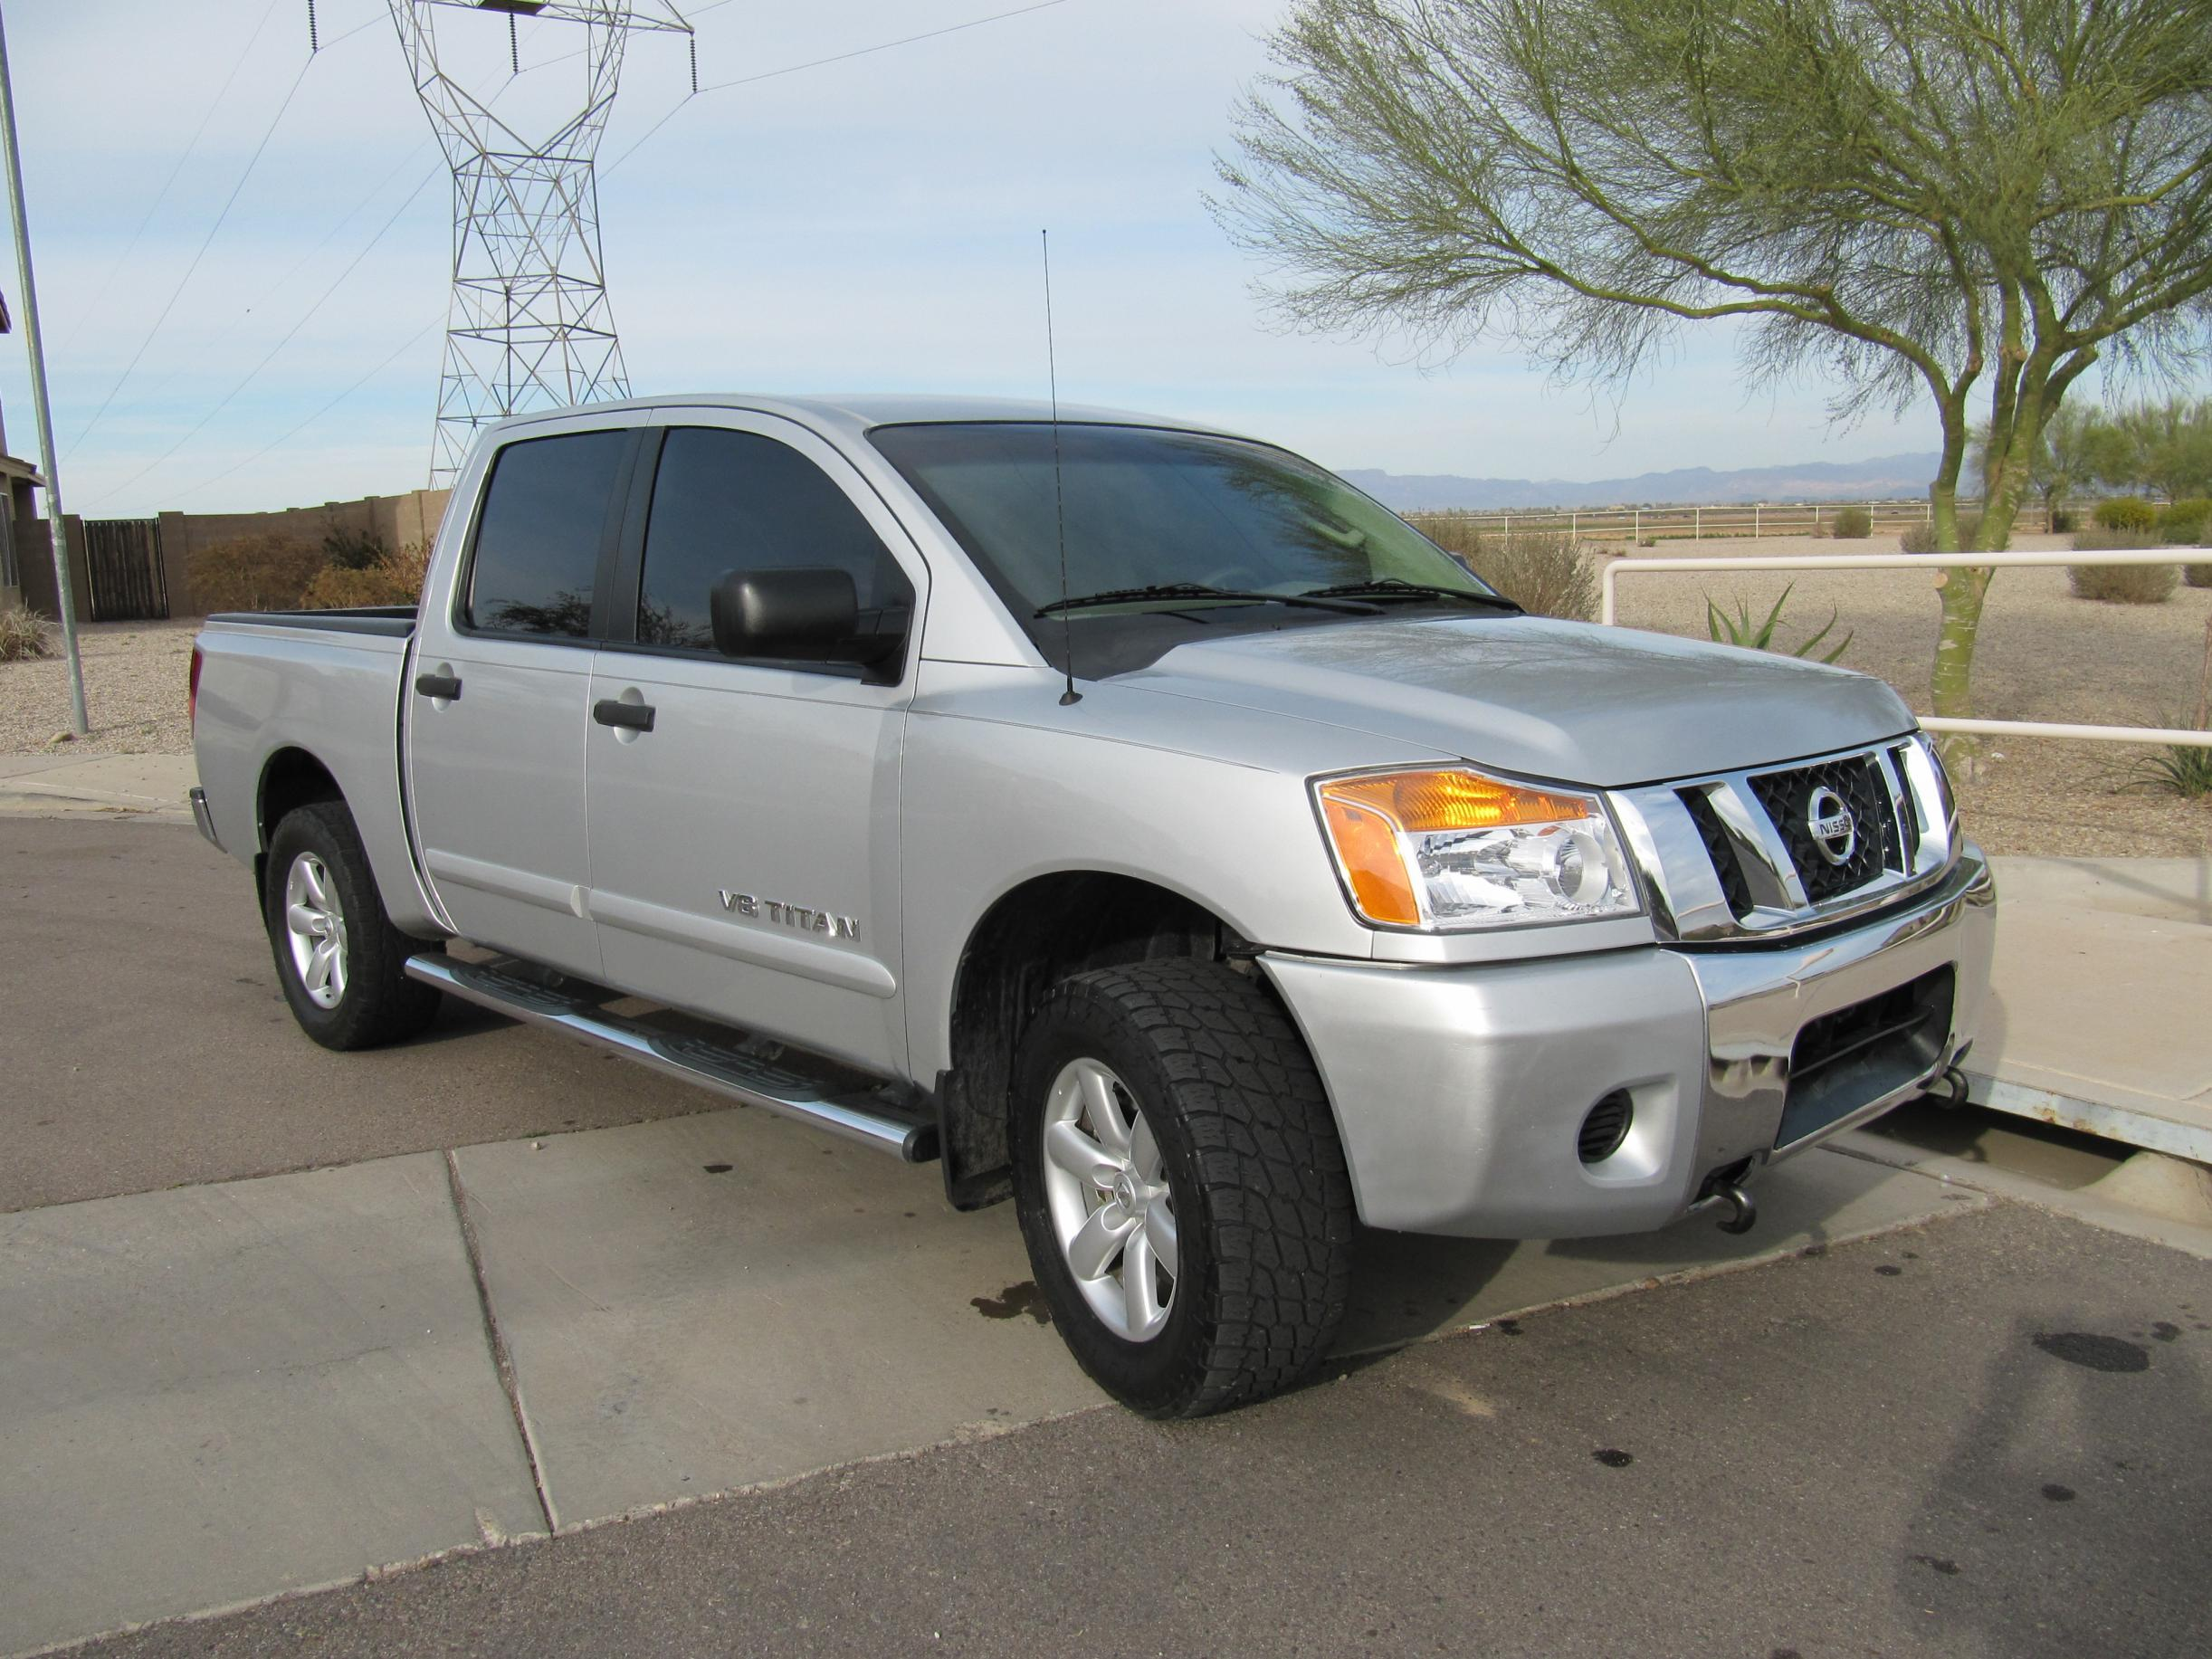 2008 nissan titan information and photos zombiedrive. Black Bedroom Furniture Sets. Home Design Ideas